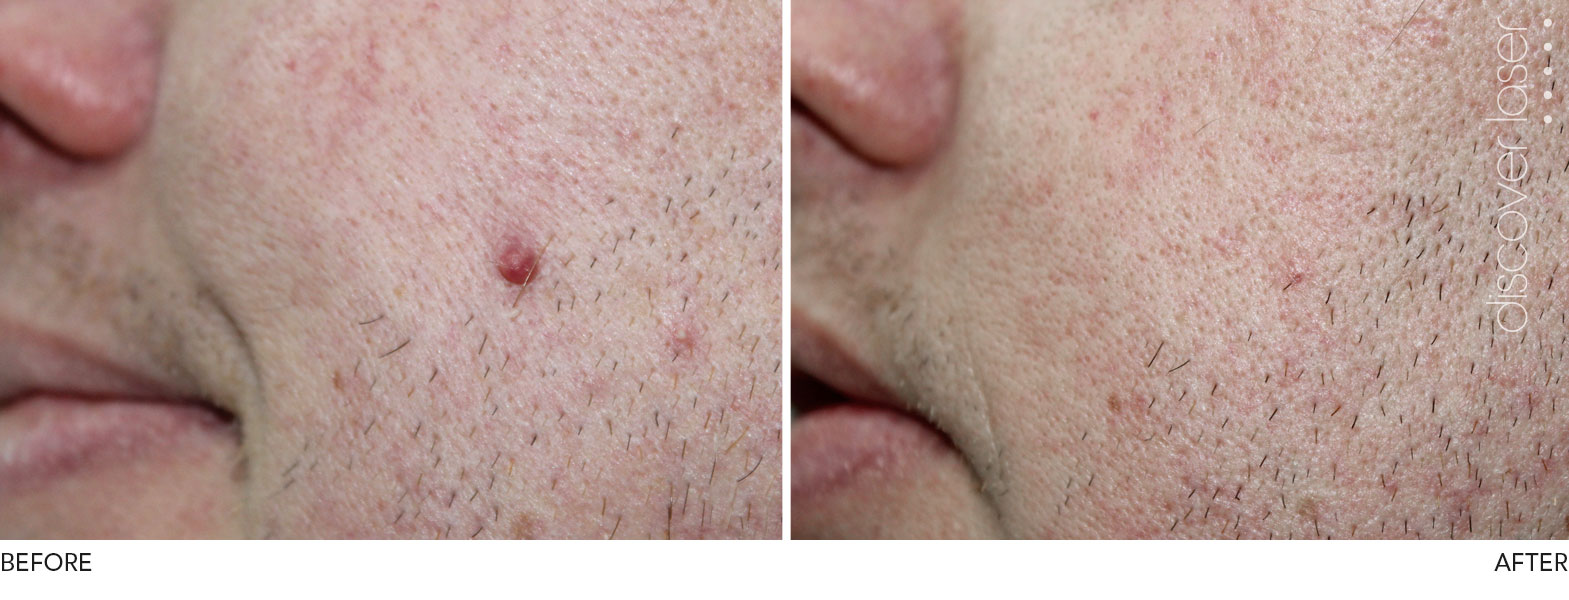 Facial mole removal nhs accept. opinion